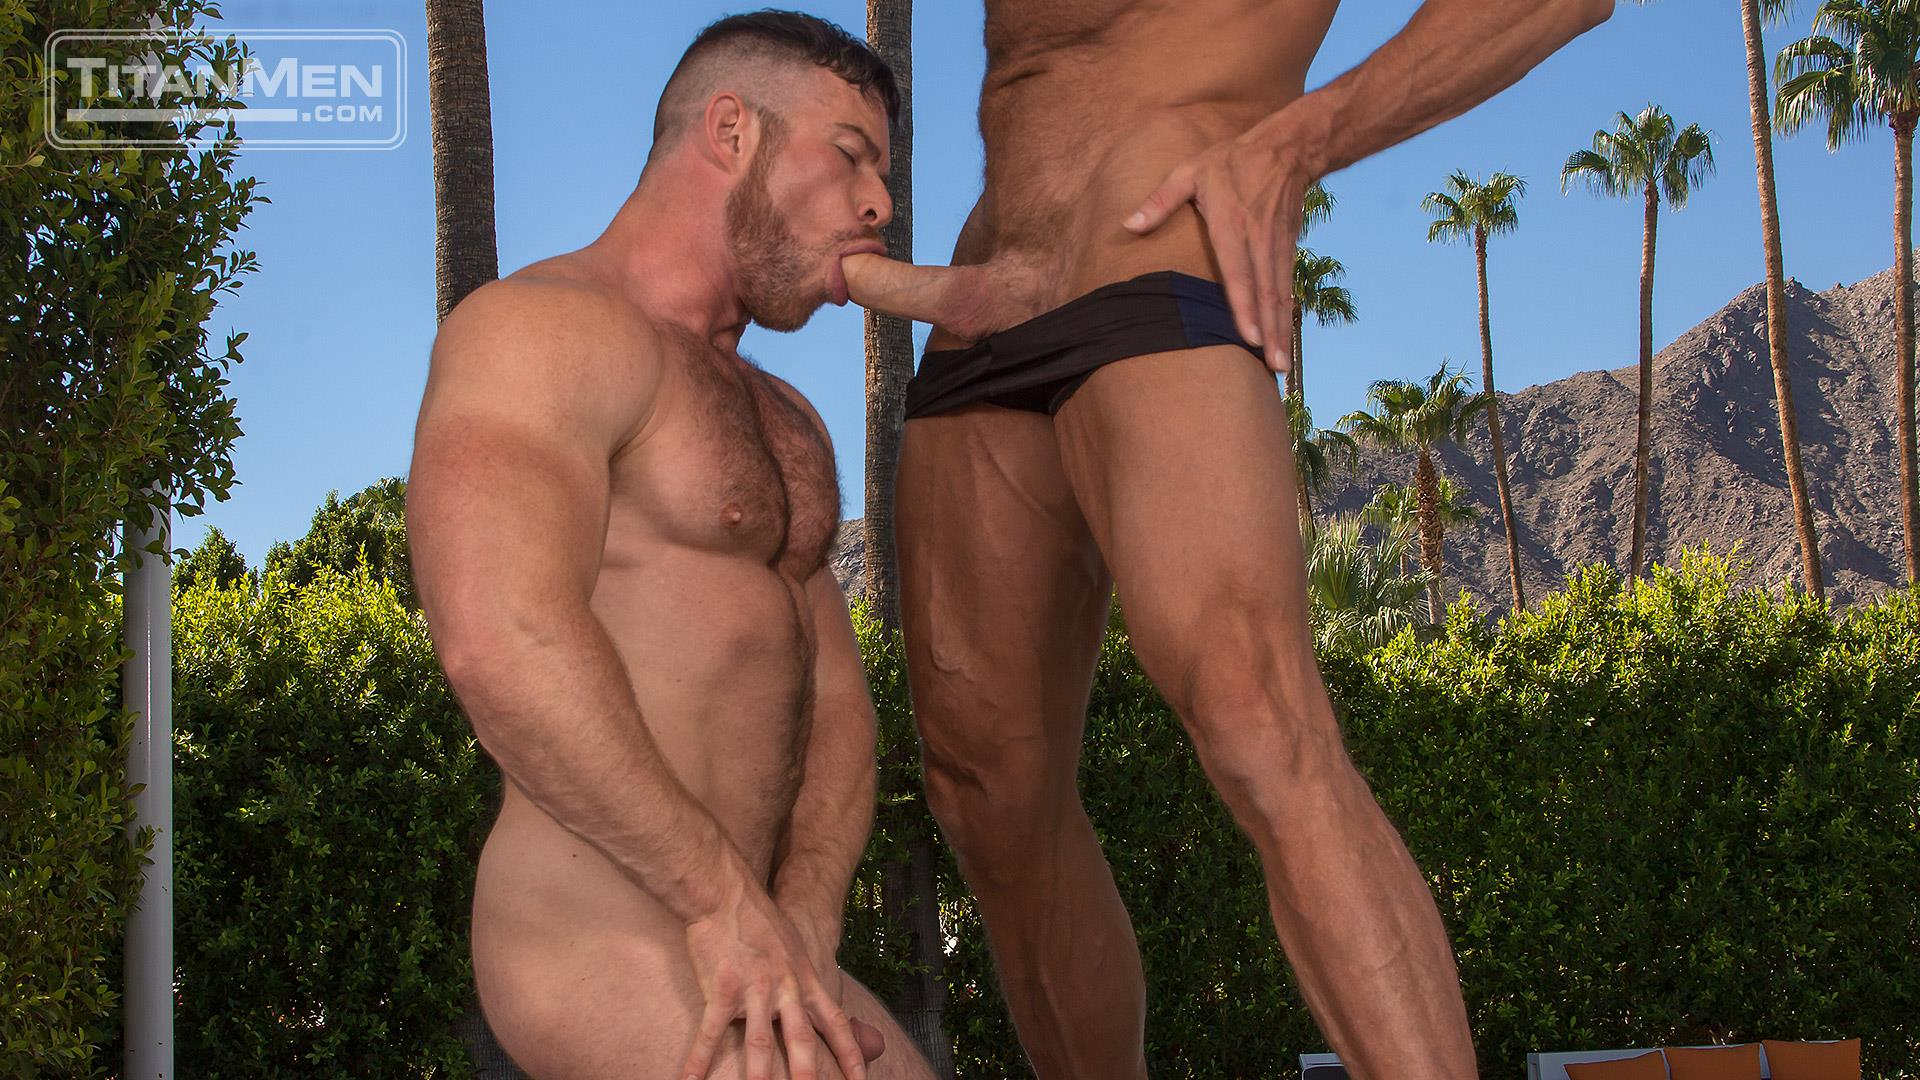 Titan-Men-Dallas-Steele-and-Liam-Knox-Hairy-Muscle-Daddies-Fucking-07 Thick Cock Hairy Muscle Hunks Dallas Steele and Liam Knox Fucking